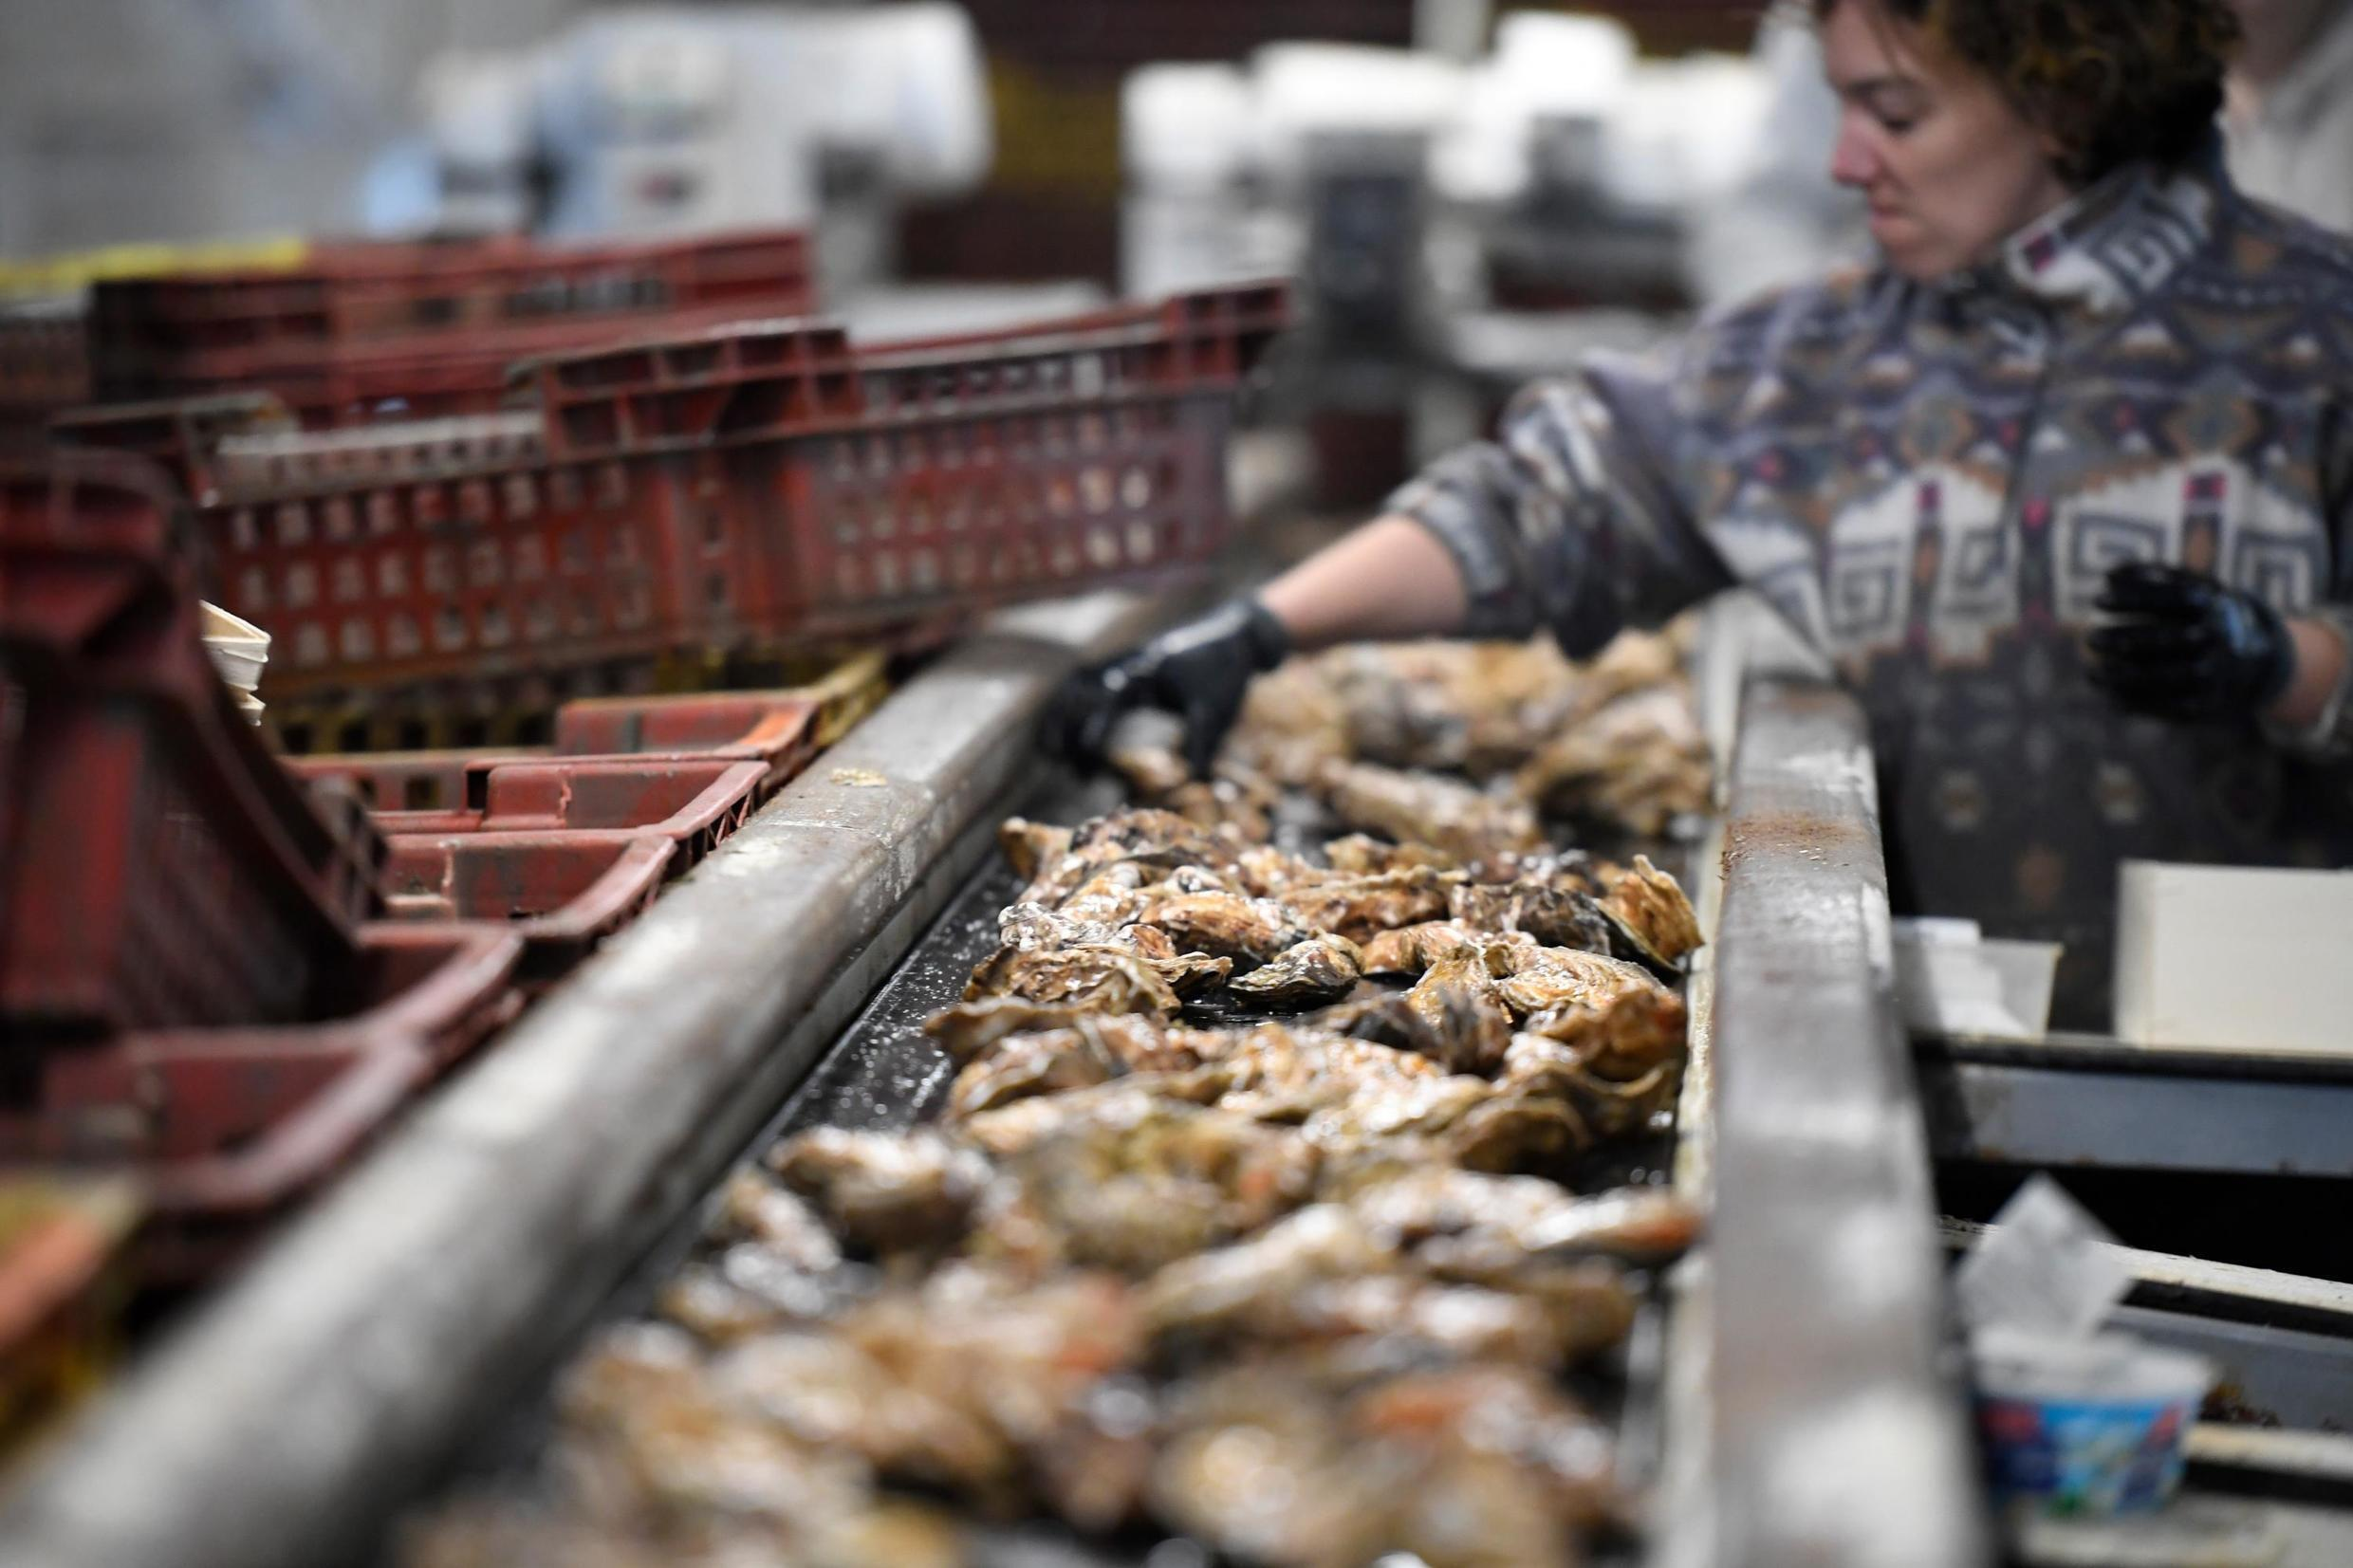 The oyster farmers say wastewater is to blame for the outbreak of norovirus, or the winter vomit bug, along the coast of Brittany.